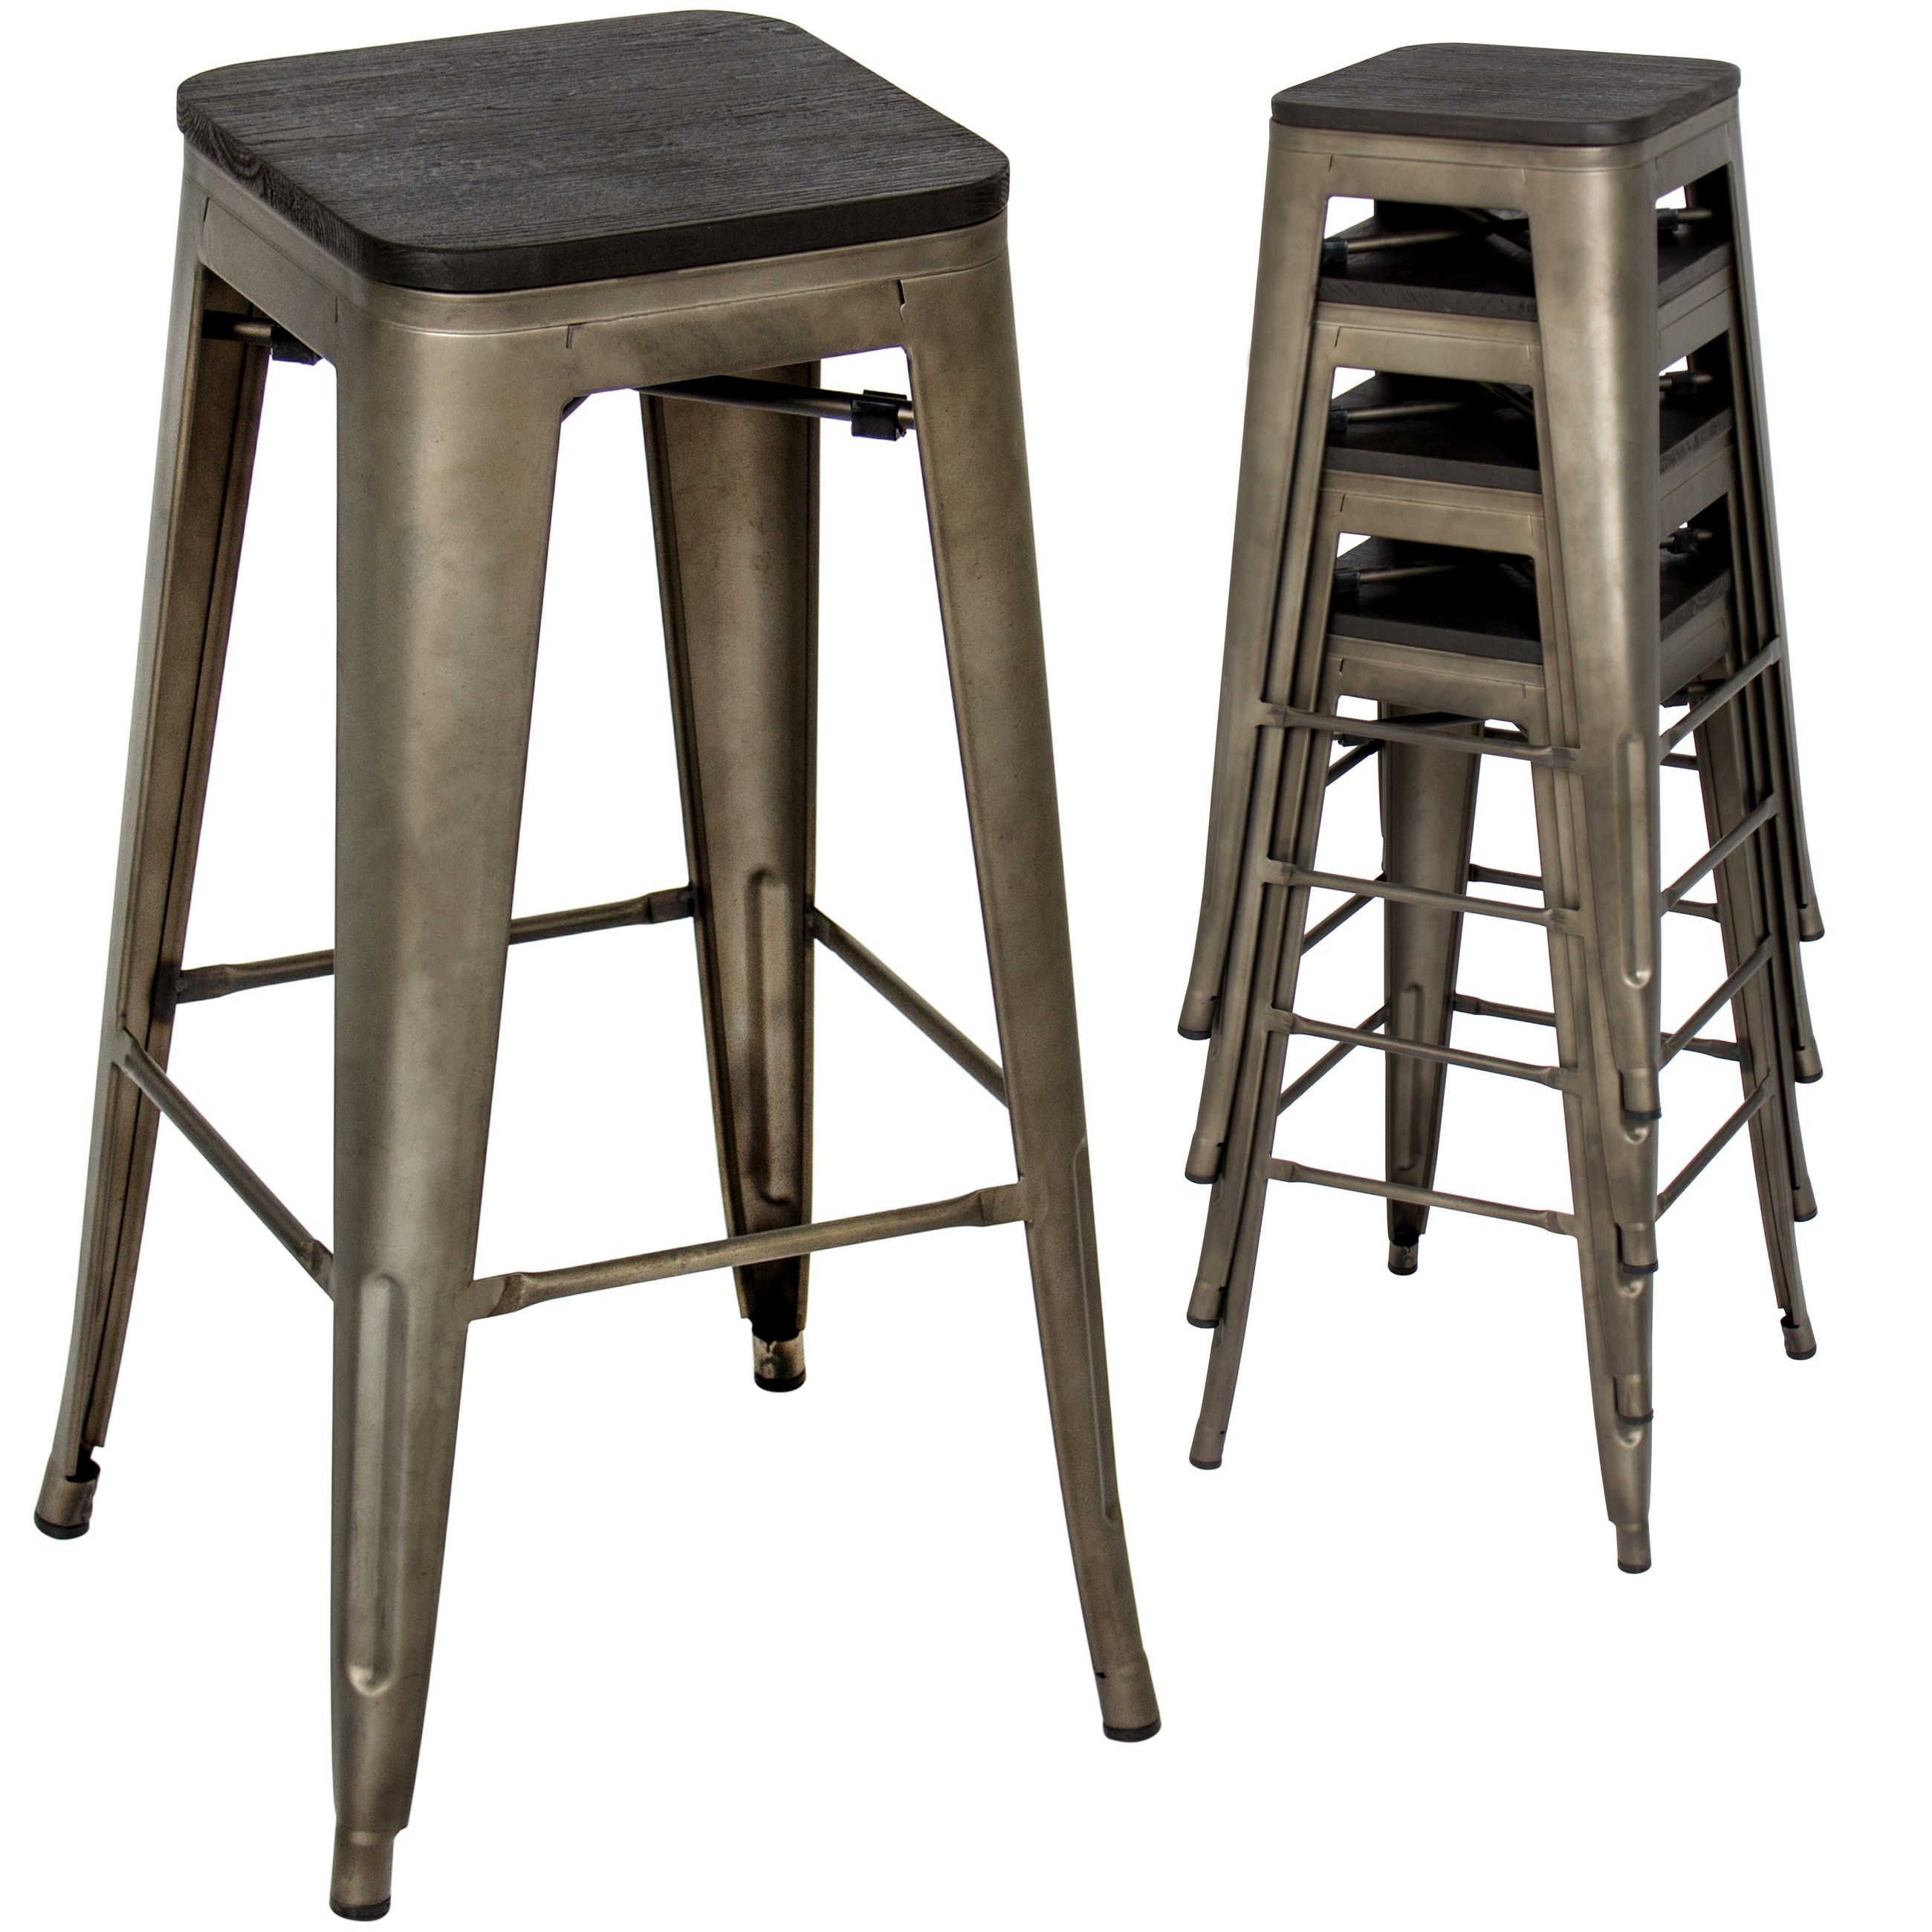 Best Choice Products Set Of 4 All Weather 30in Stackable Backless Steel Bar Height Stools W Wooden Seats Bronze Walmart Com Steel Bar Stools Bar Stools Cool Bar Stools